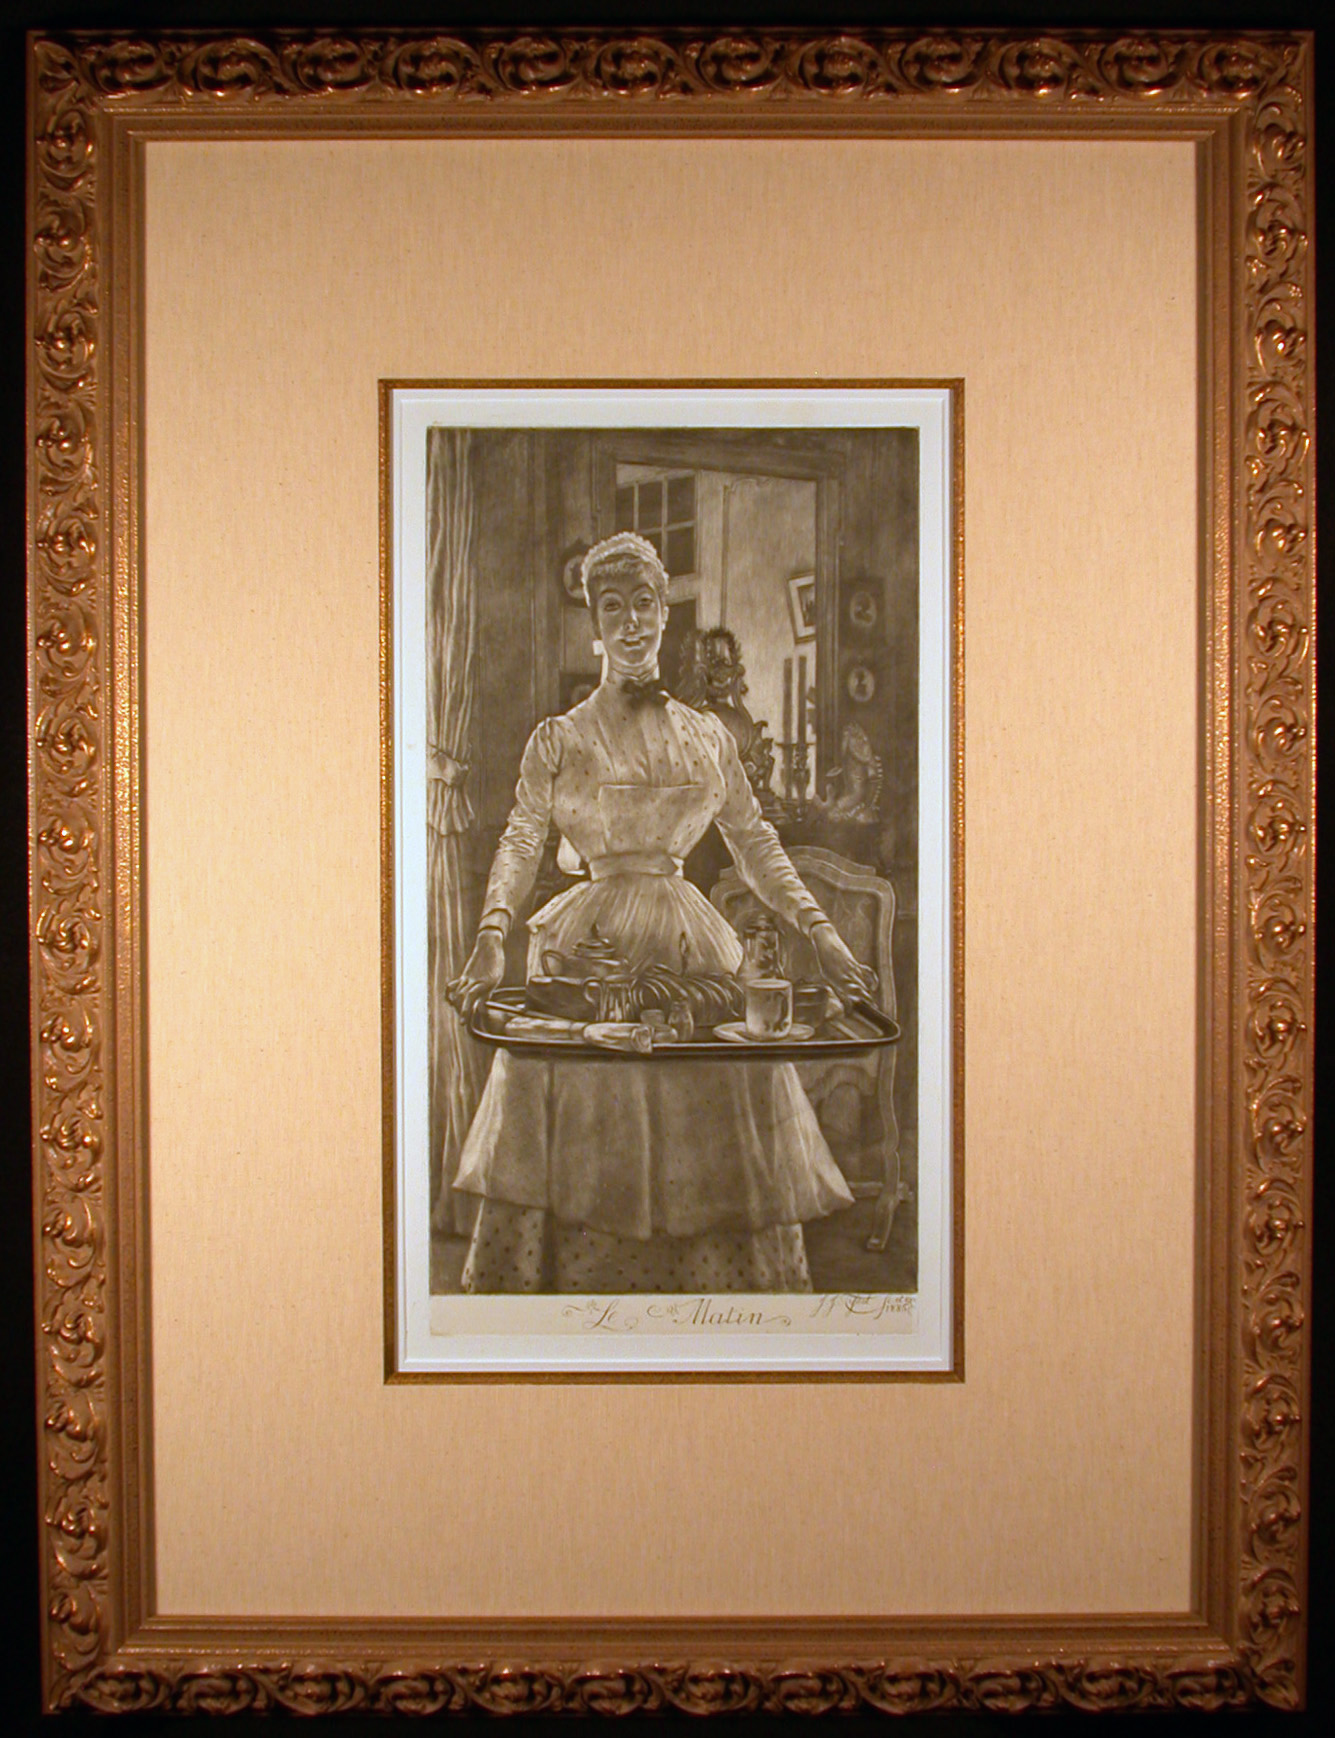 Le Matin Original Mezzotint Etching by James Tissot Framed and Matted